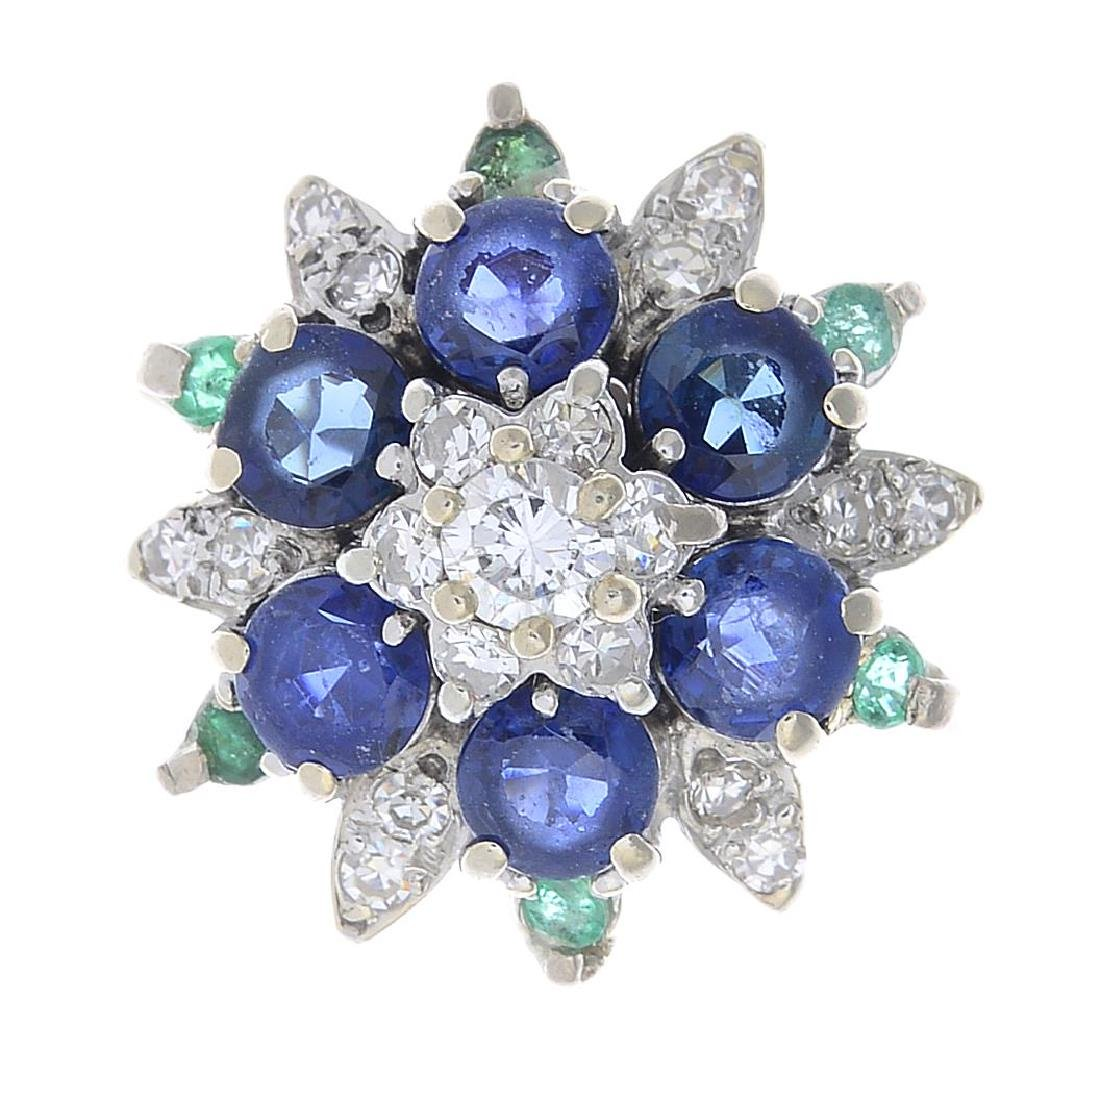 A sapphire, emerald and diamond dress ring. The